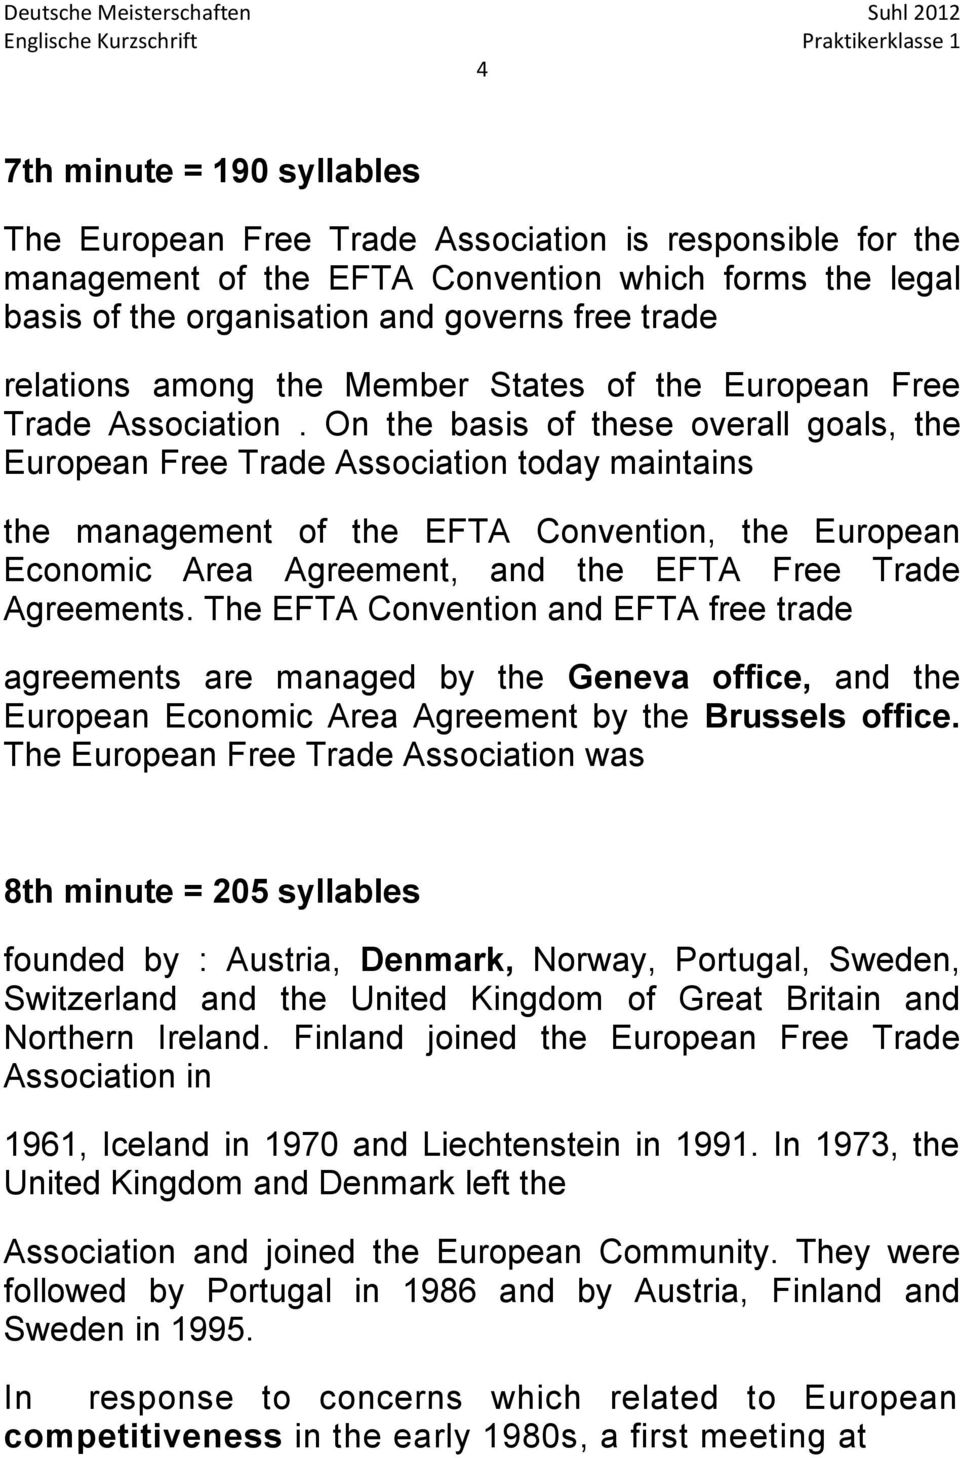 On the basis of these overall goals, the European Free Trade Association today maintains the management of the EFTA Convention, the European Economic Area Agreement, and the EFTA Free Trade